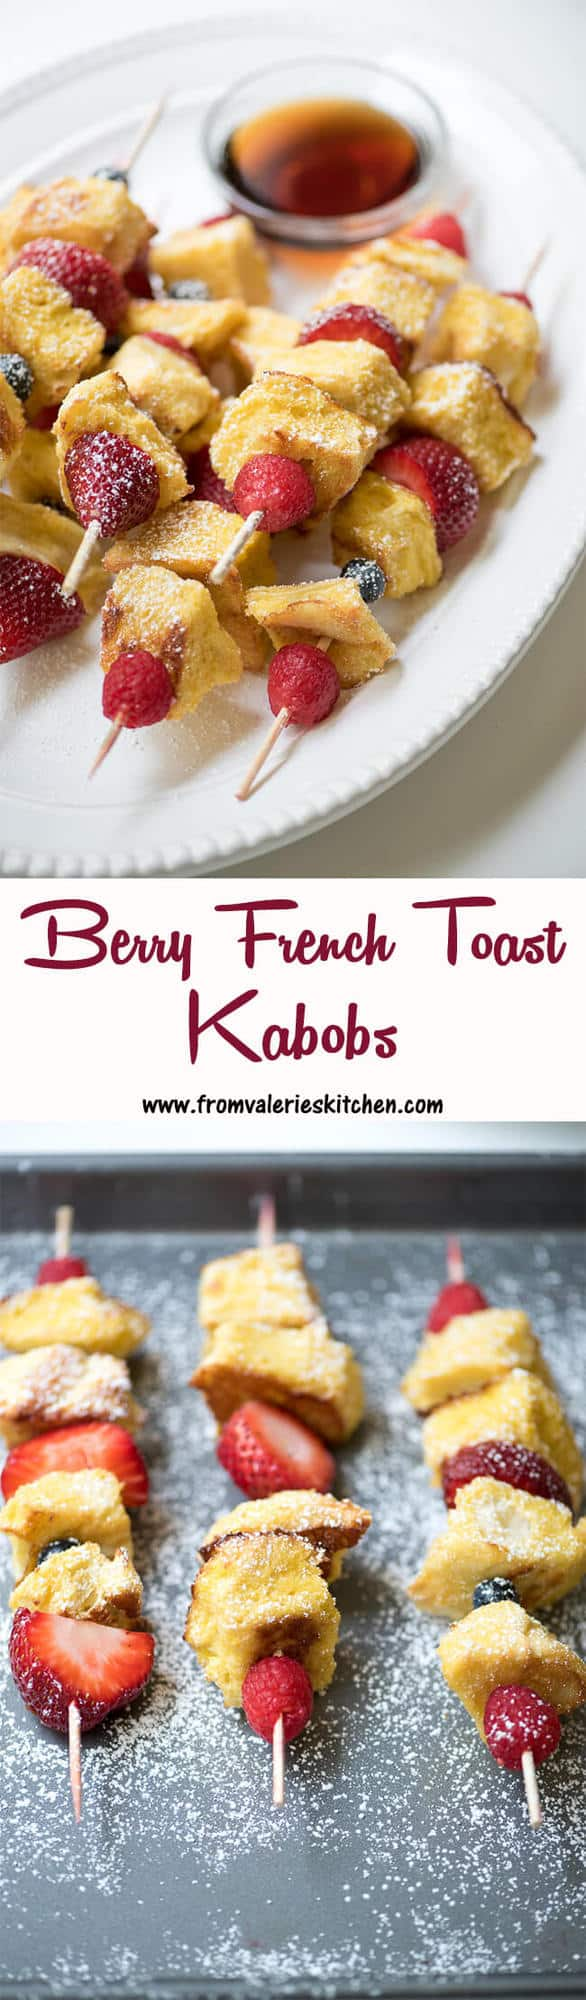 A two image vertical collage of Berry French Toast Kabobs with text overlay.